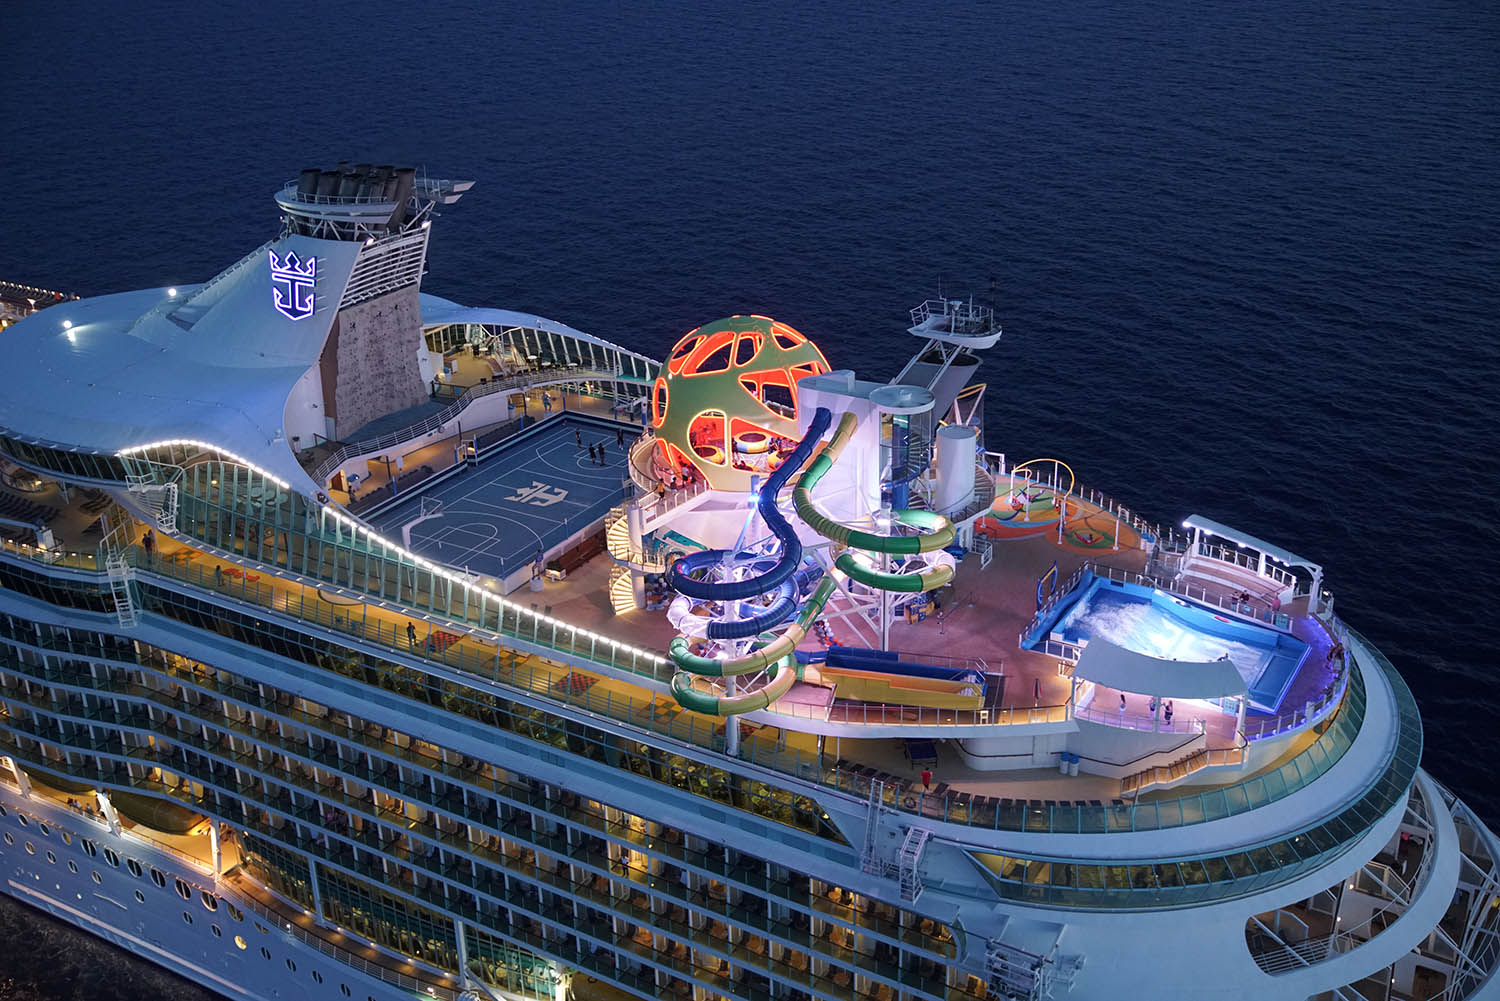 Video of Royal Caribbean Cruise Ship's New Sports Deck (cruisefever.net)